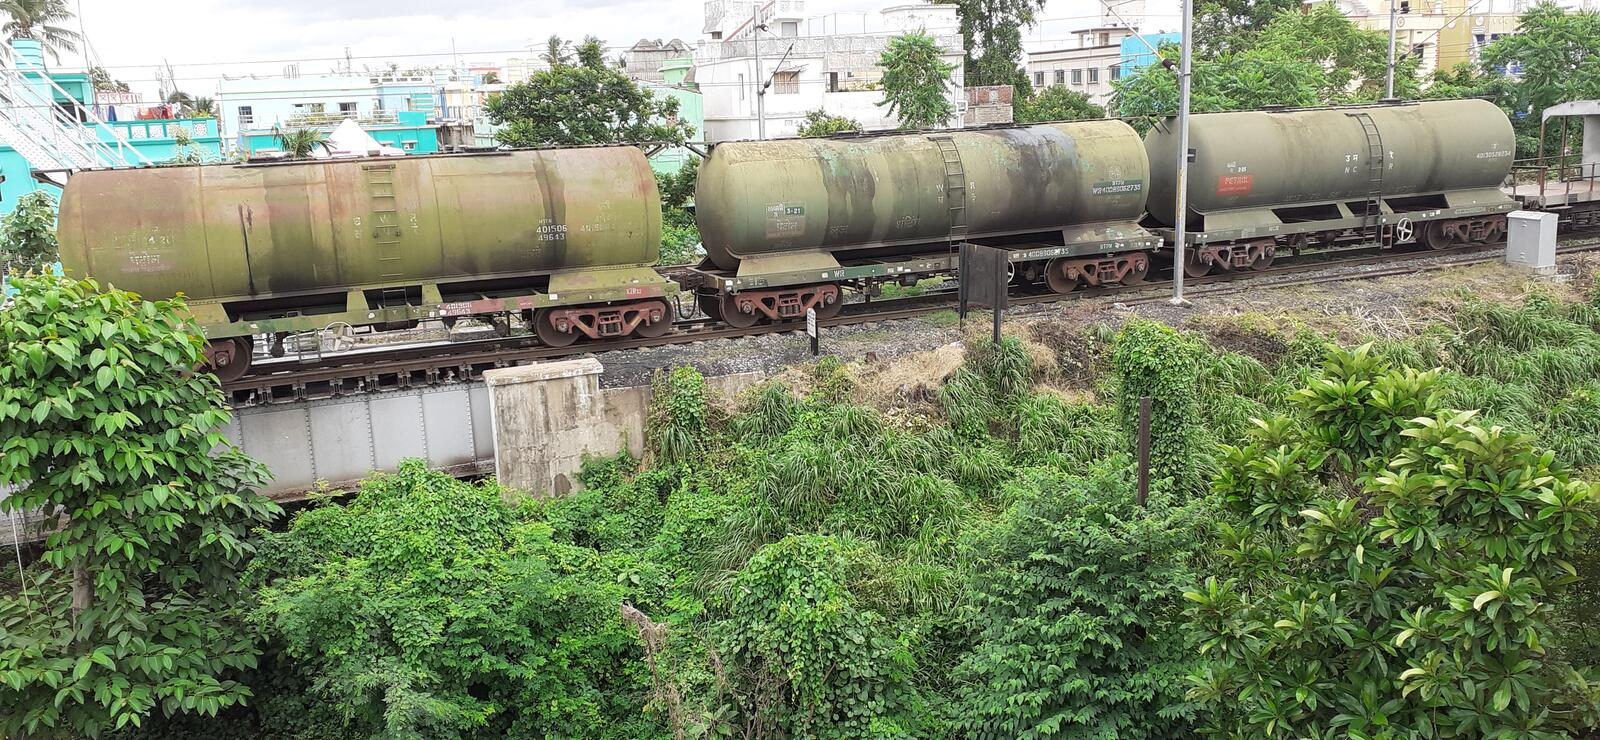 Oil tank train. A oil tank train wait for signal on the railway tracks wetting to go after passenger train royalty free stock photos